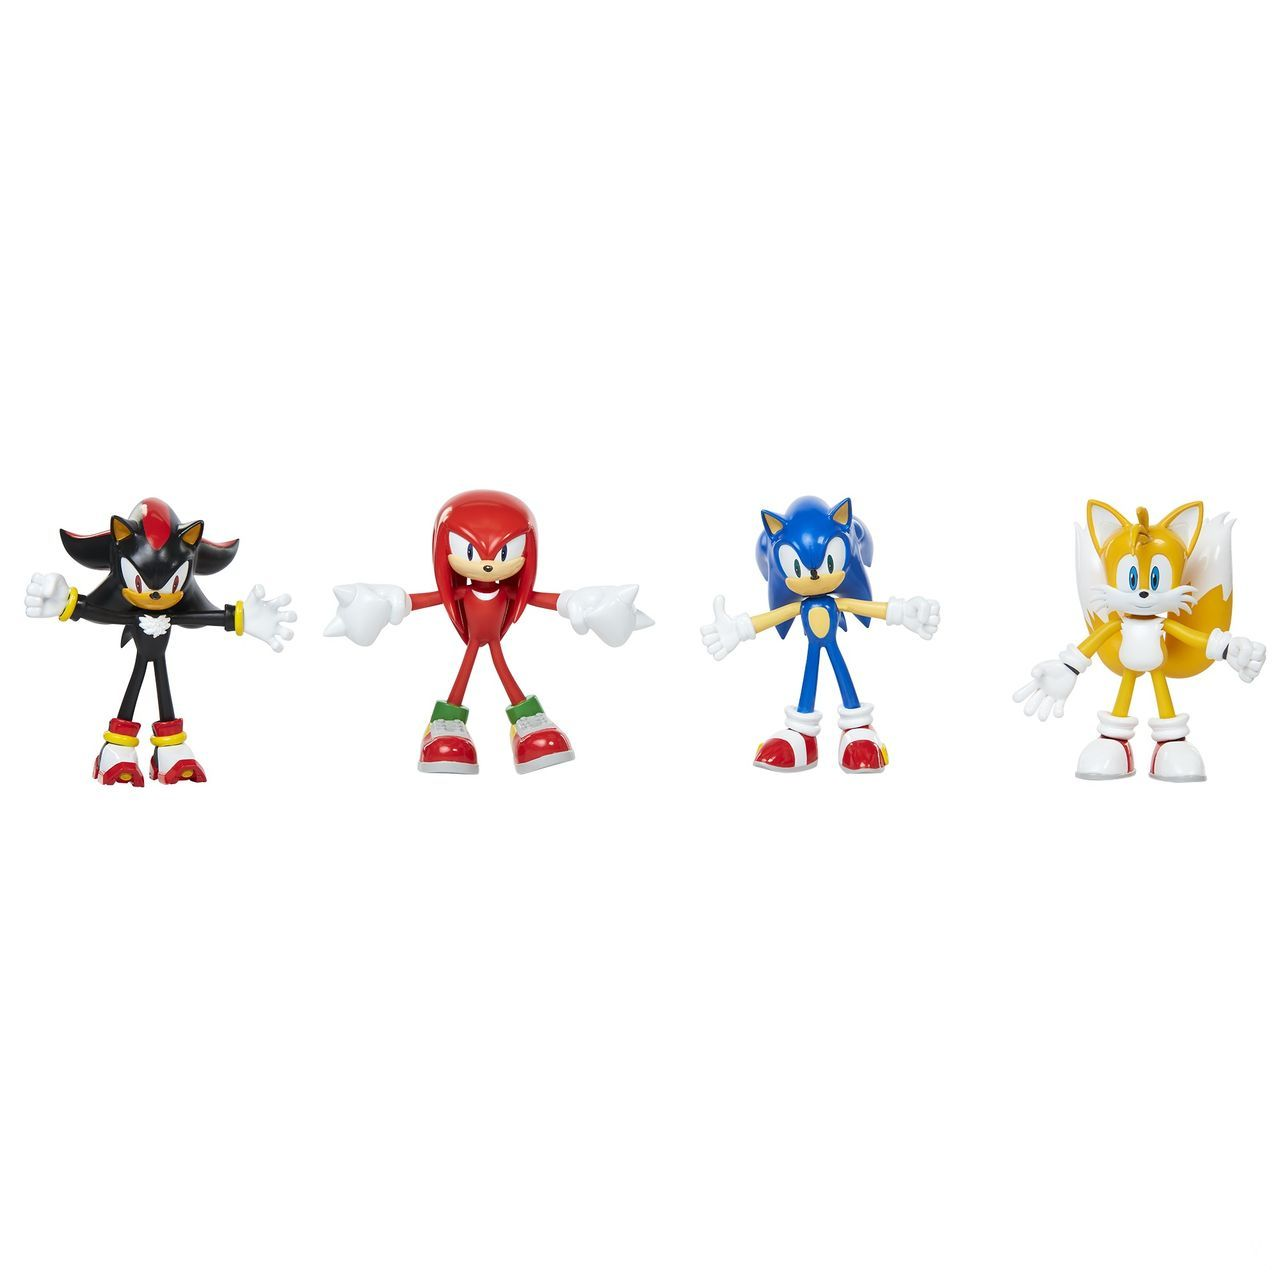 Sega and JAKKS Pacific announce a new range of toys from Sonic